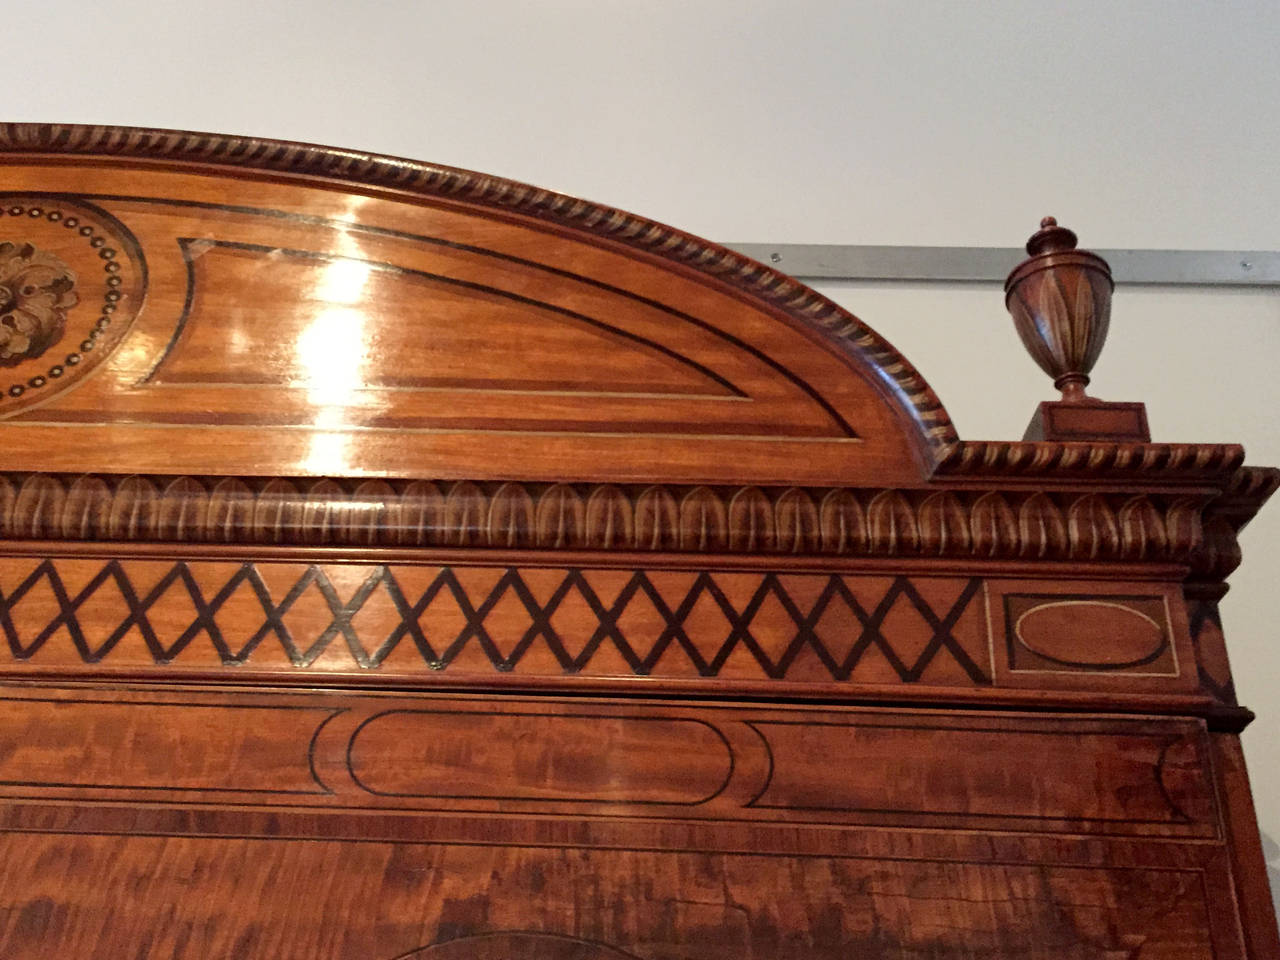 18th Century and Earlier Fine Hepplewhite Decorated Inlaid Satinwood & Mahogany Two-Part Bookcase Cabinet